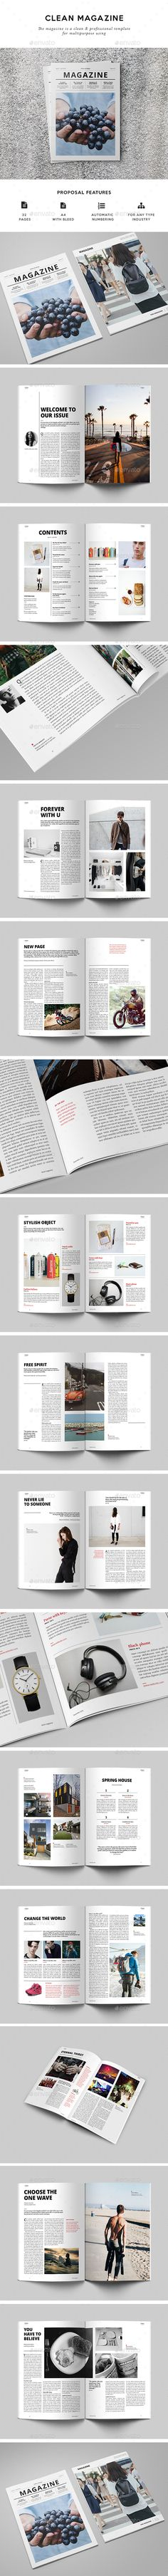 Multipurpose Magazine Template InDesign INDD. Download here: http://graphicriver.net/item/multipurpose-magazine/15682138?ref=ksioks